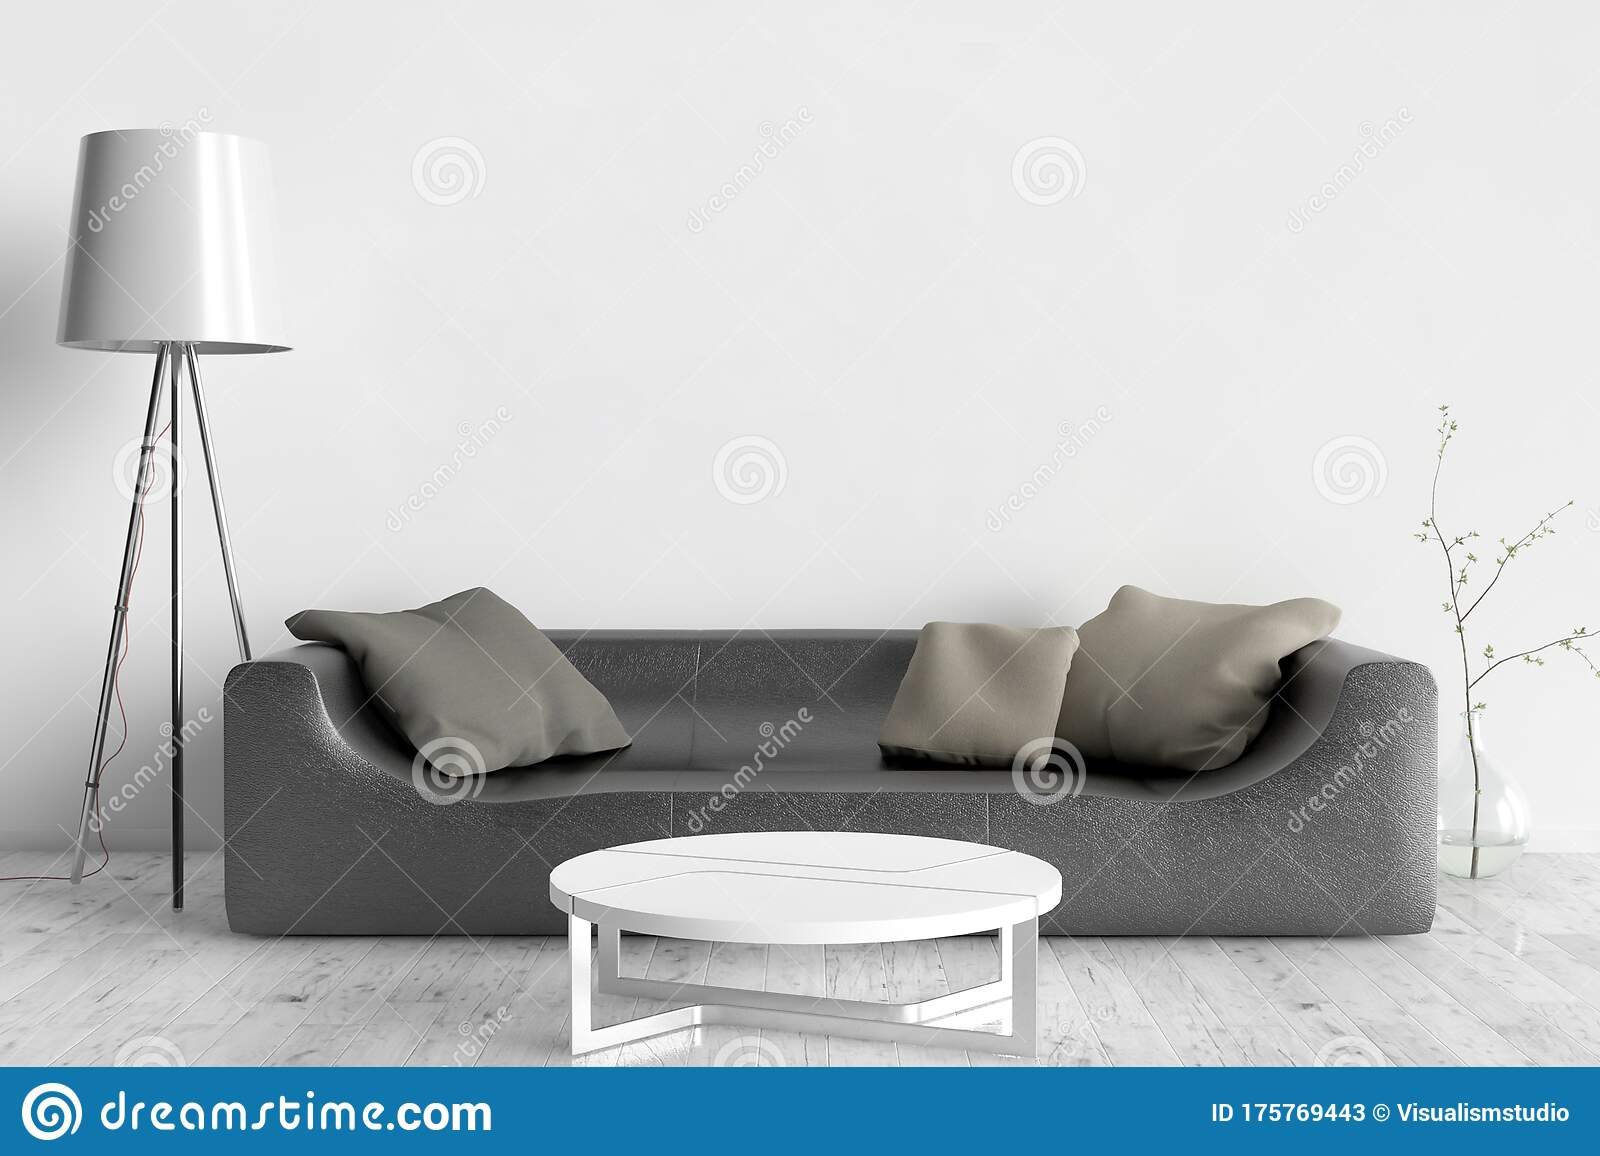 Wall Bed And Chair Modern Mid Century Bedside Table And White Bed On White Wall Background Stock Image Image Of House Lamp 175769443